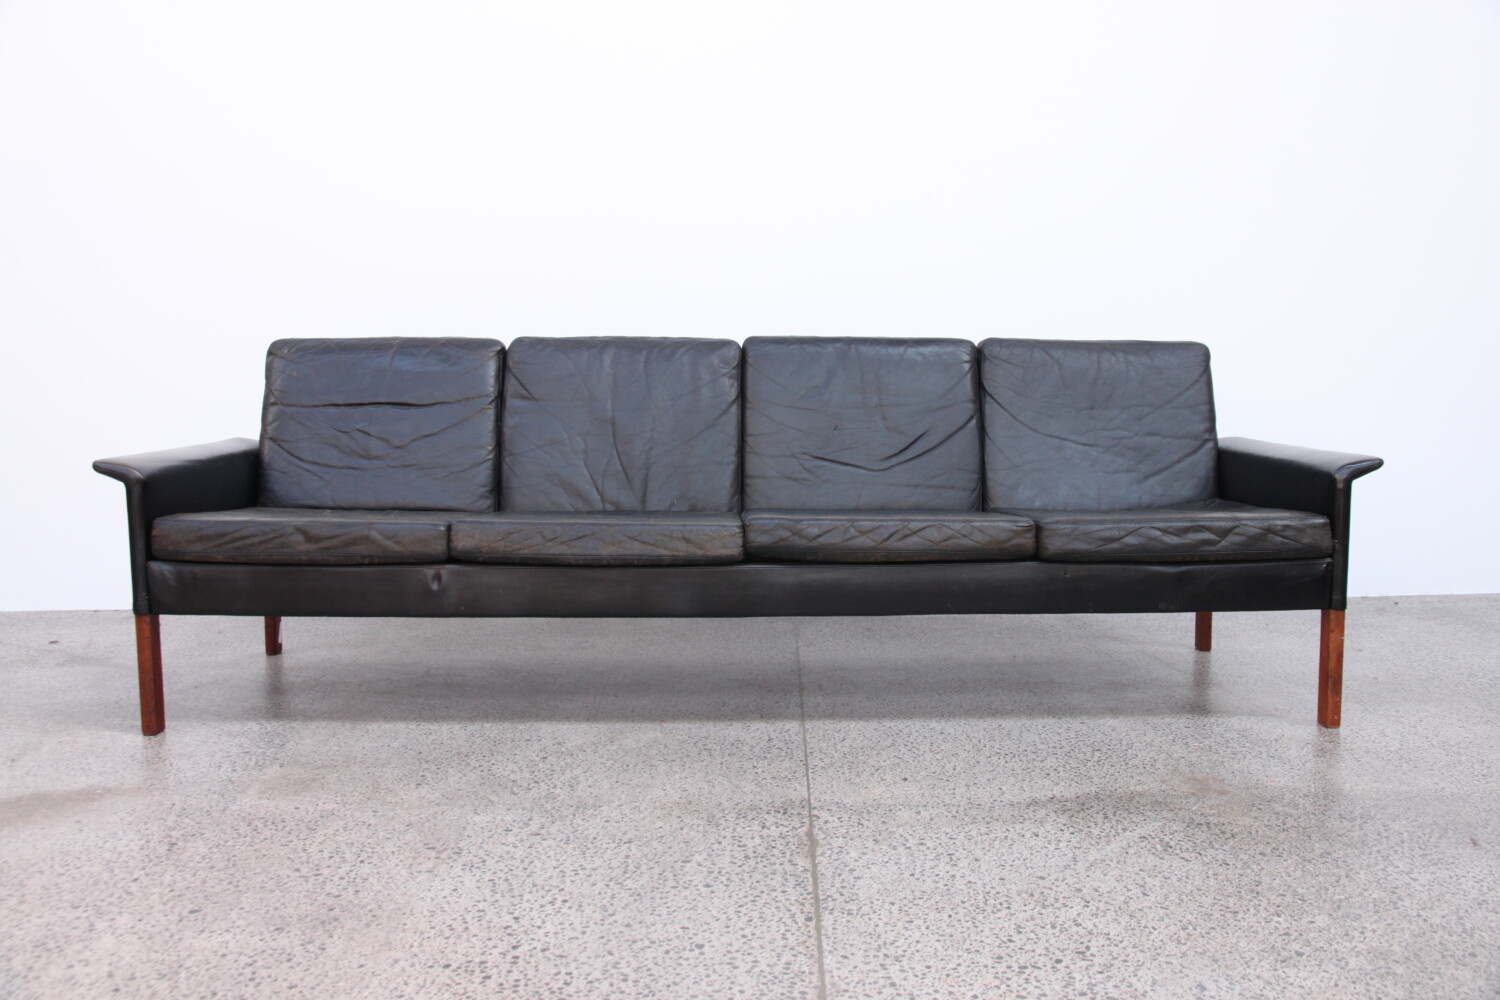 XL sofa by Hans Olsen